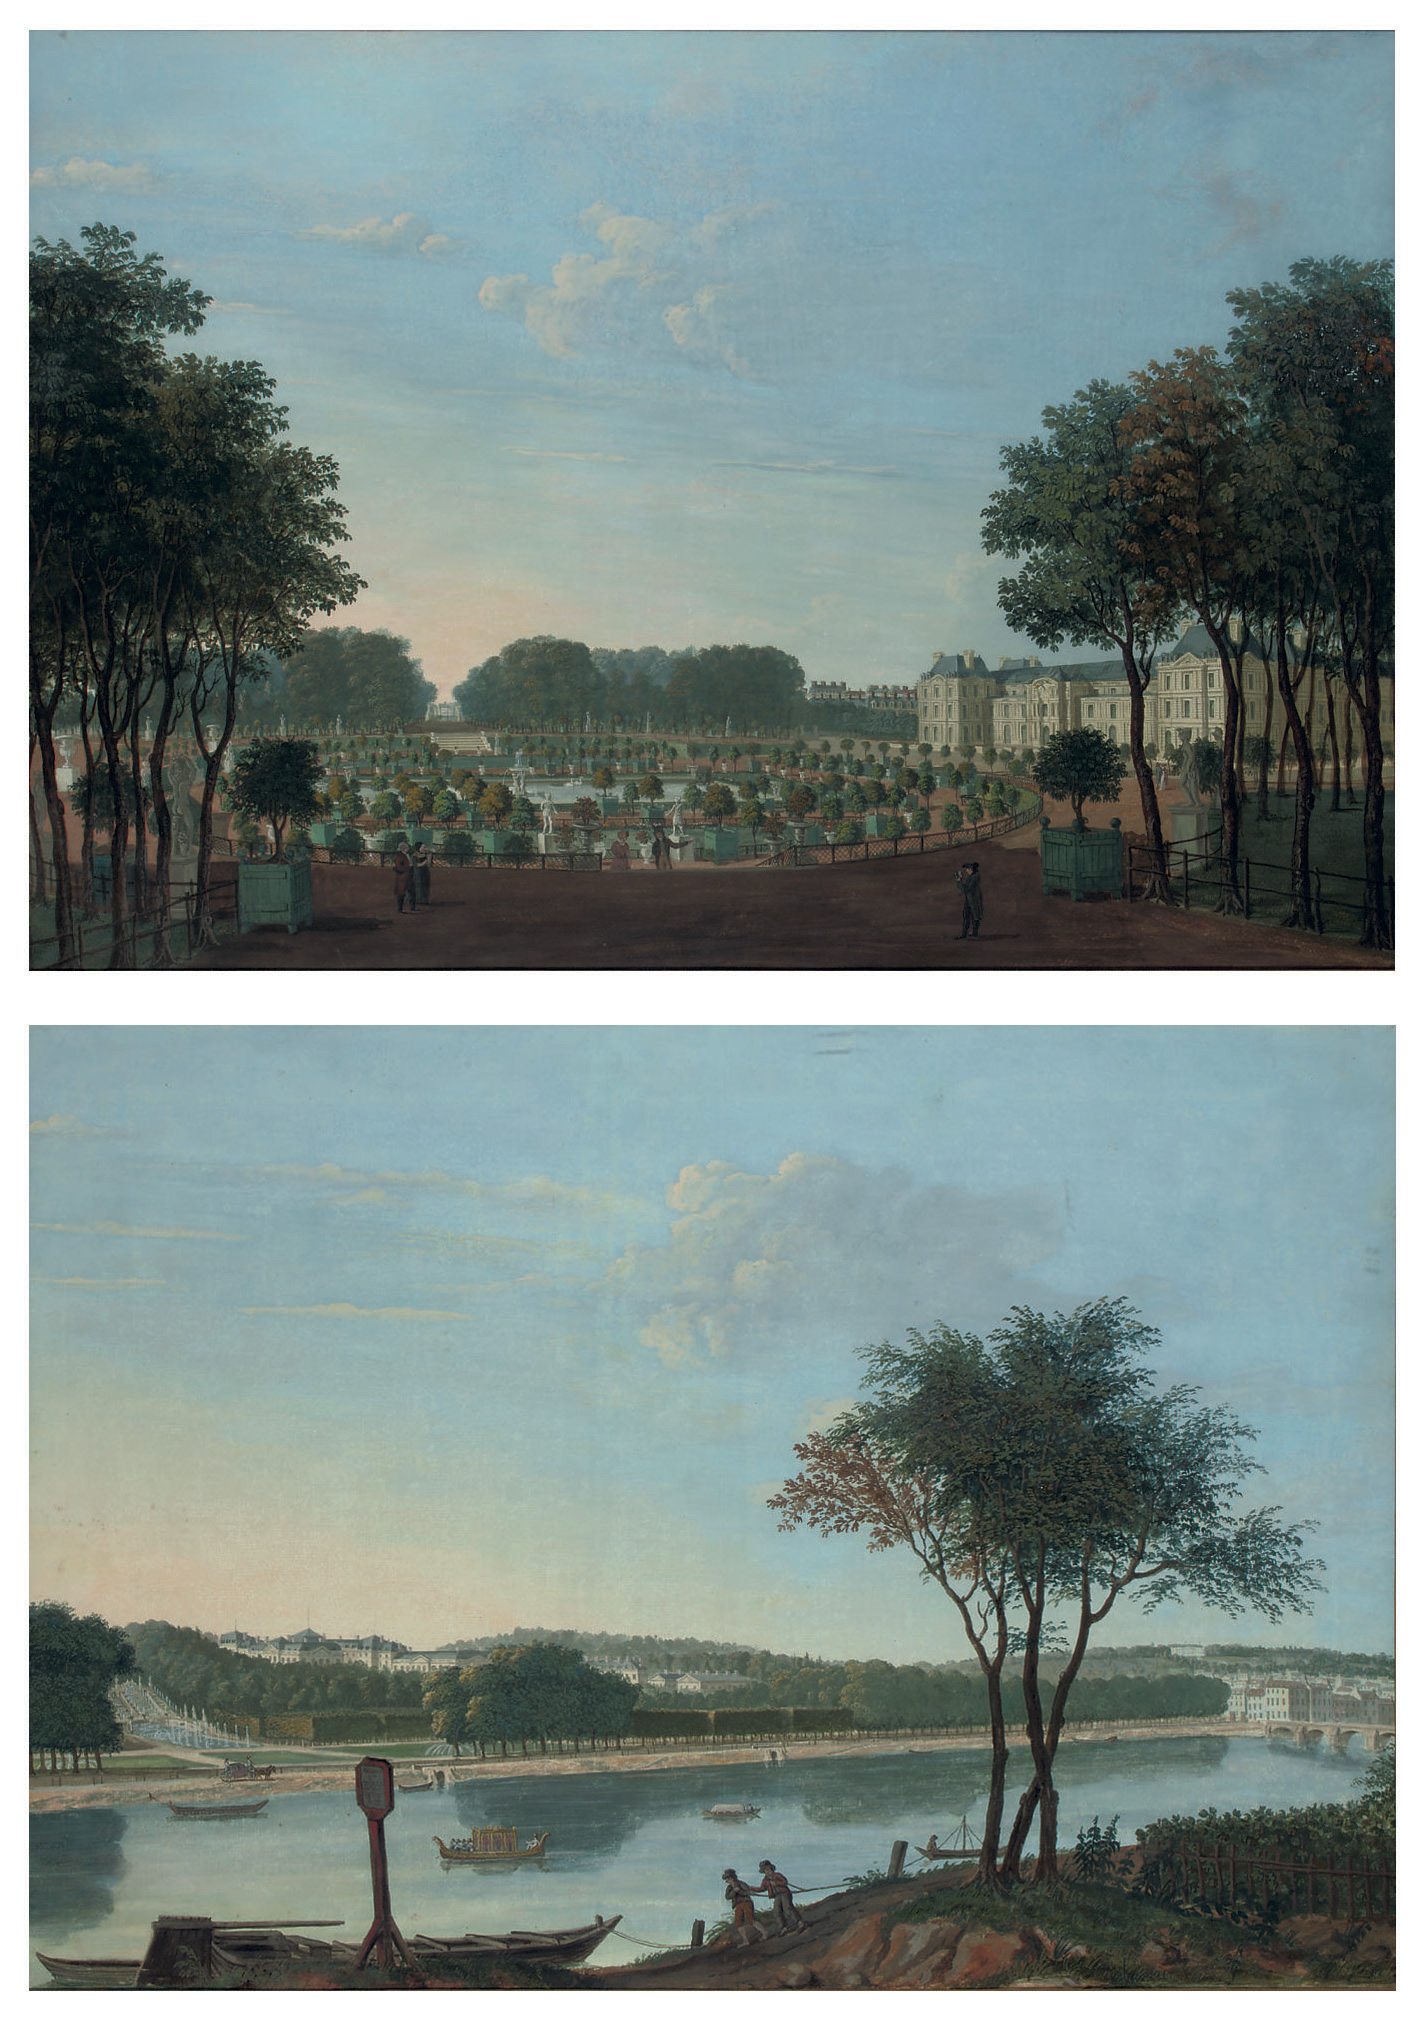 The gardens and façade of the Palais du Luxembourg, Paris; and The gardens and Château de Saint-Cloud seen from the Seine, near Paris